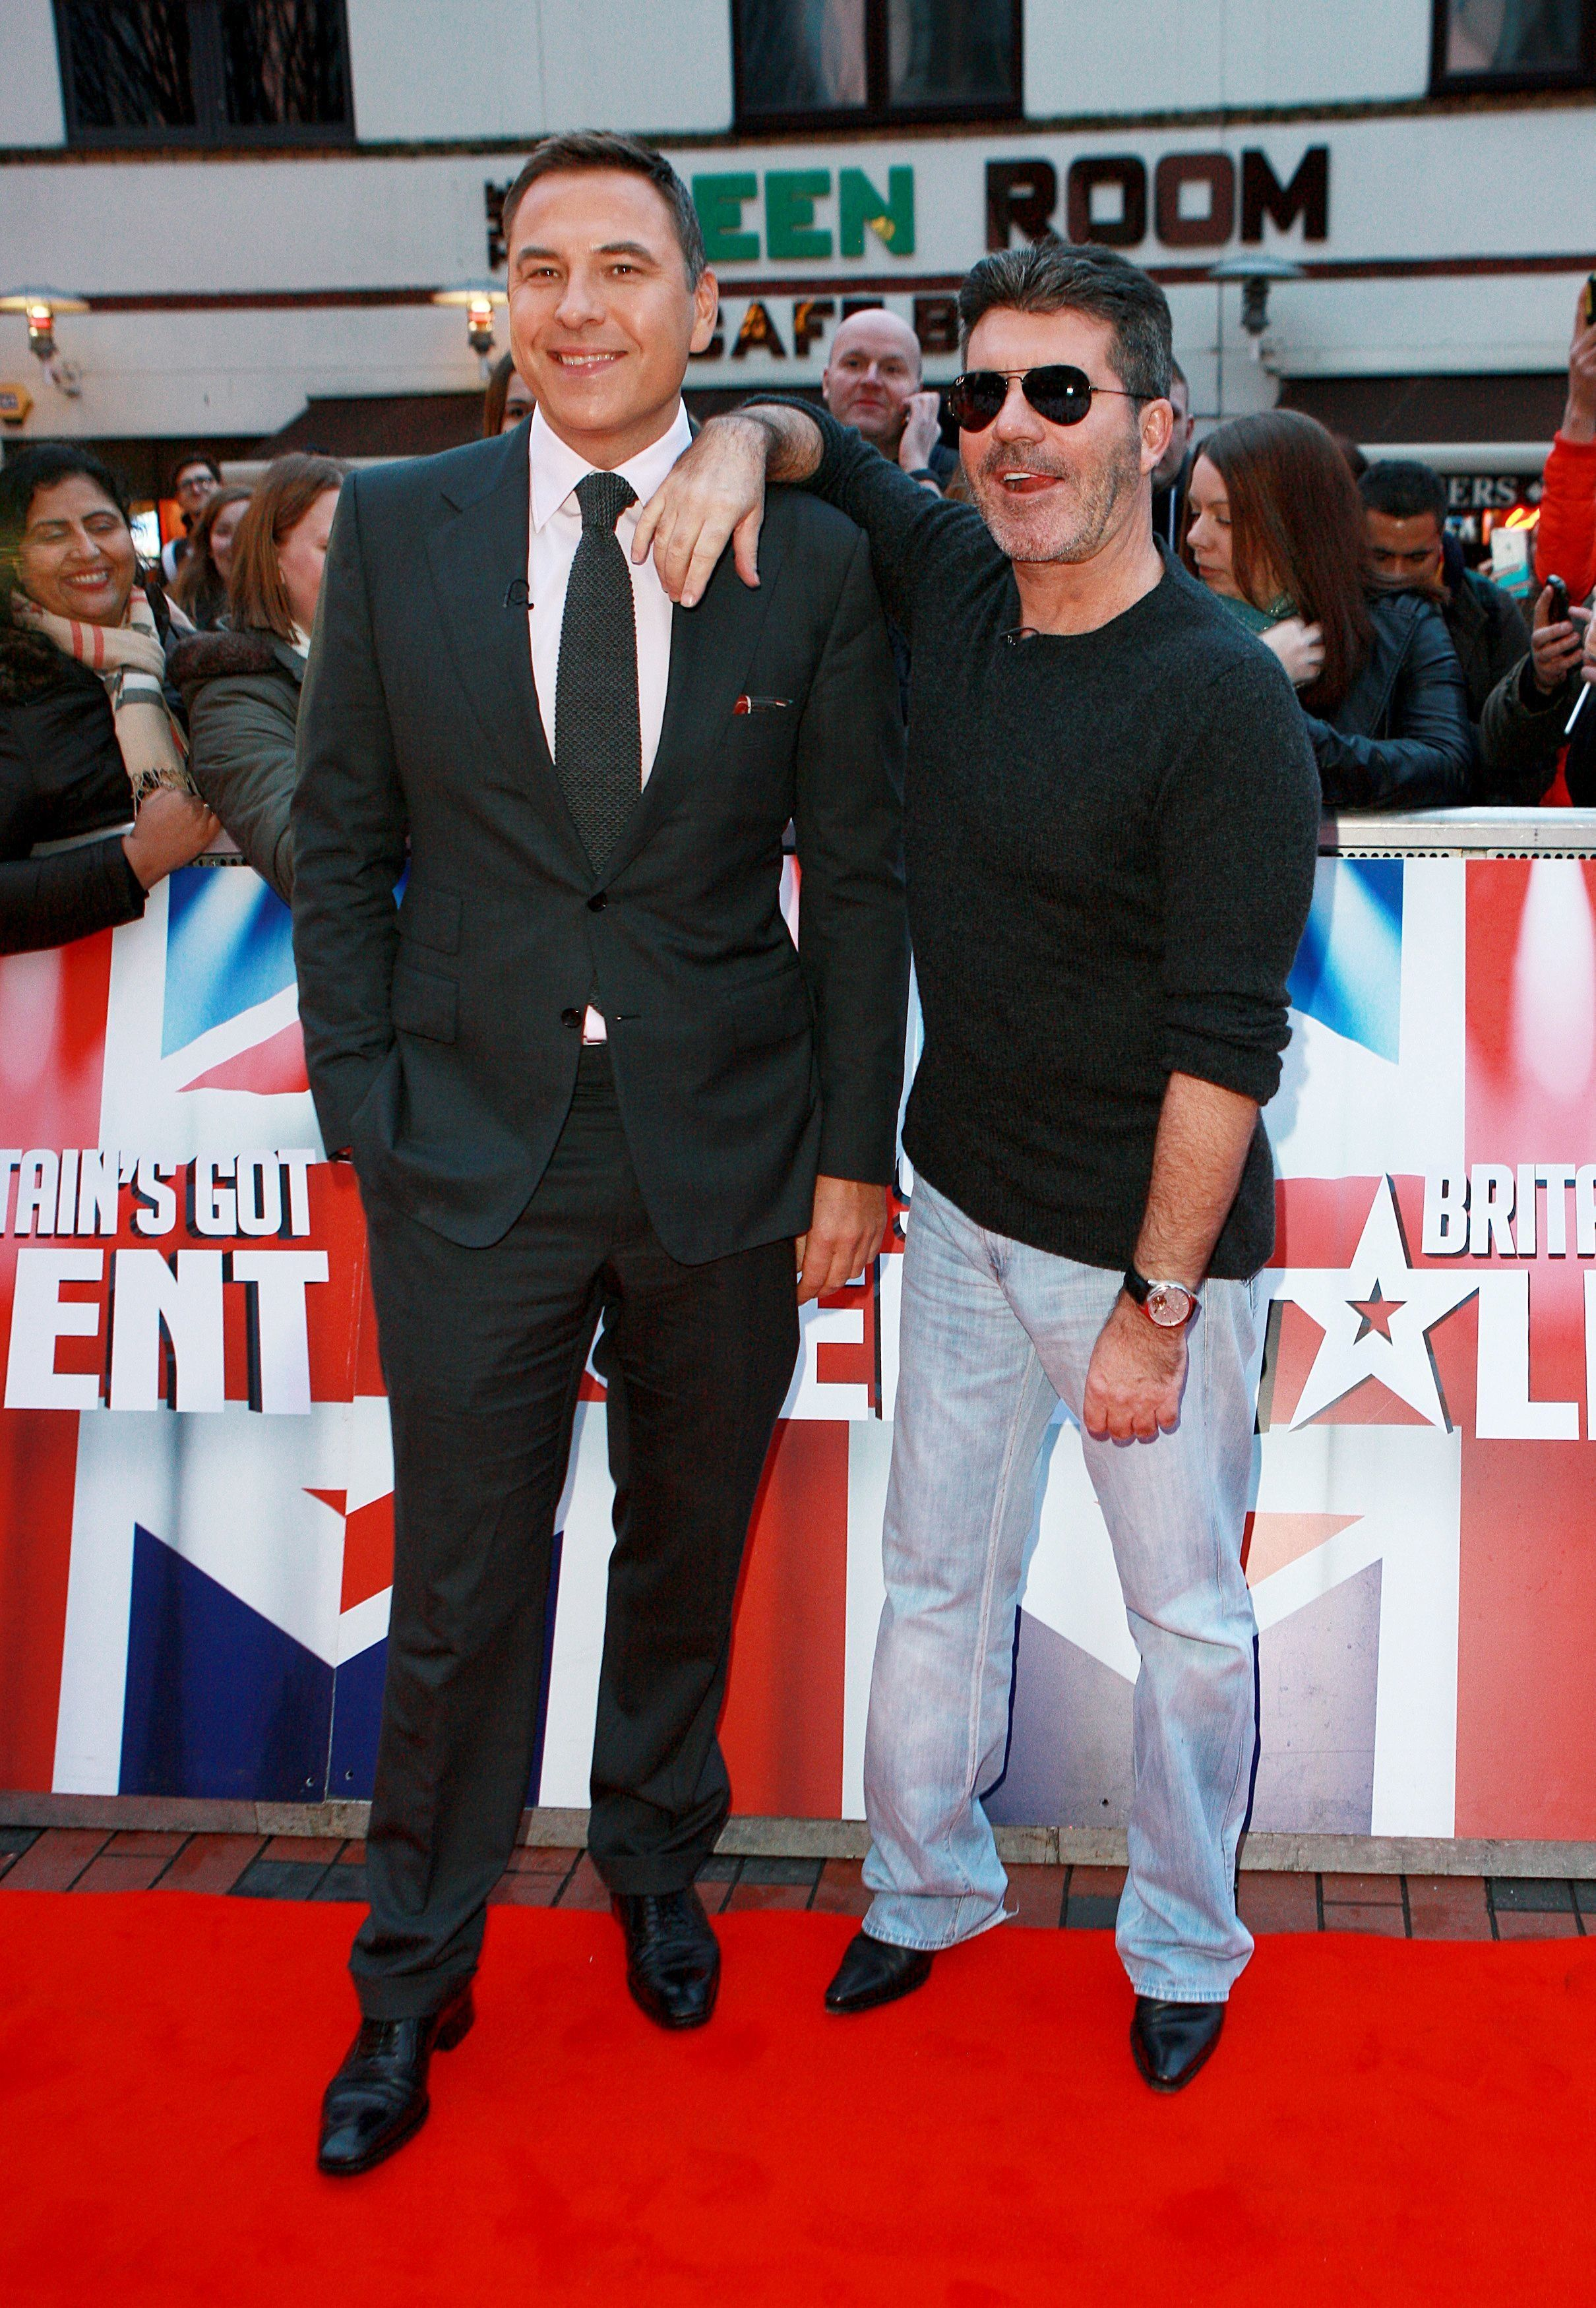 David Walliams Pokes Fun At Simon Cowell's Cosmetic